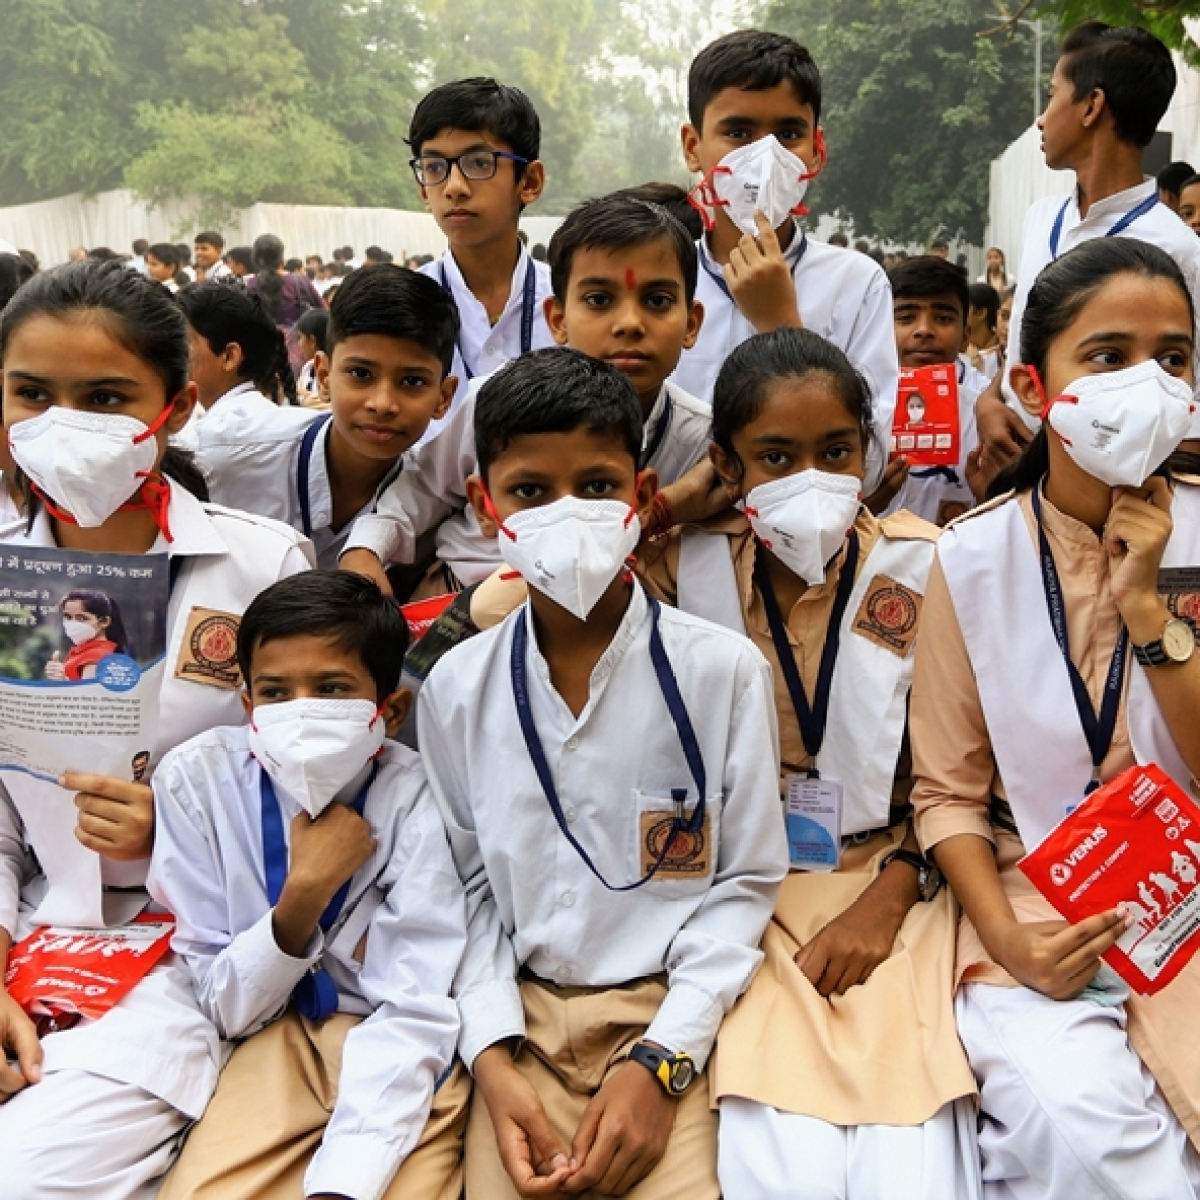 Coronavirus Updates in India: CBSE announces helpline to assist students amist lockdown